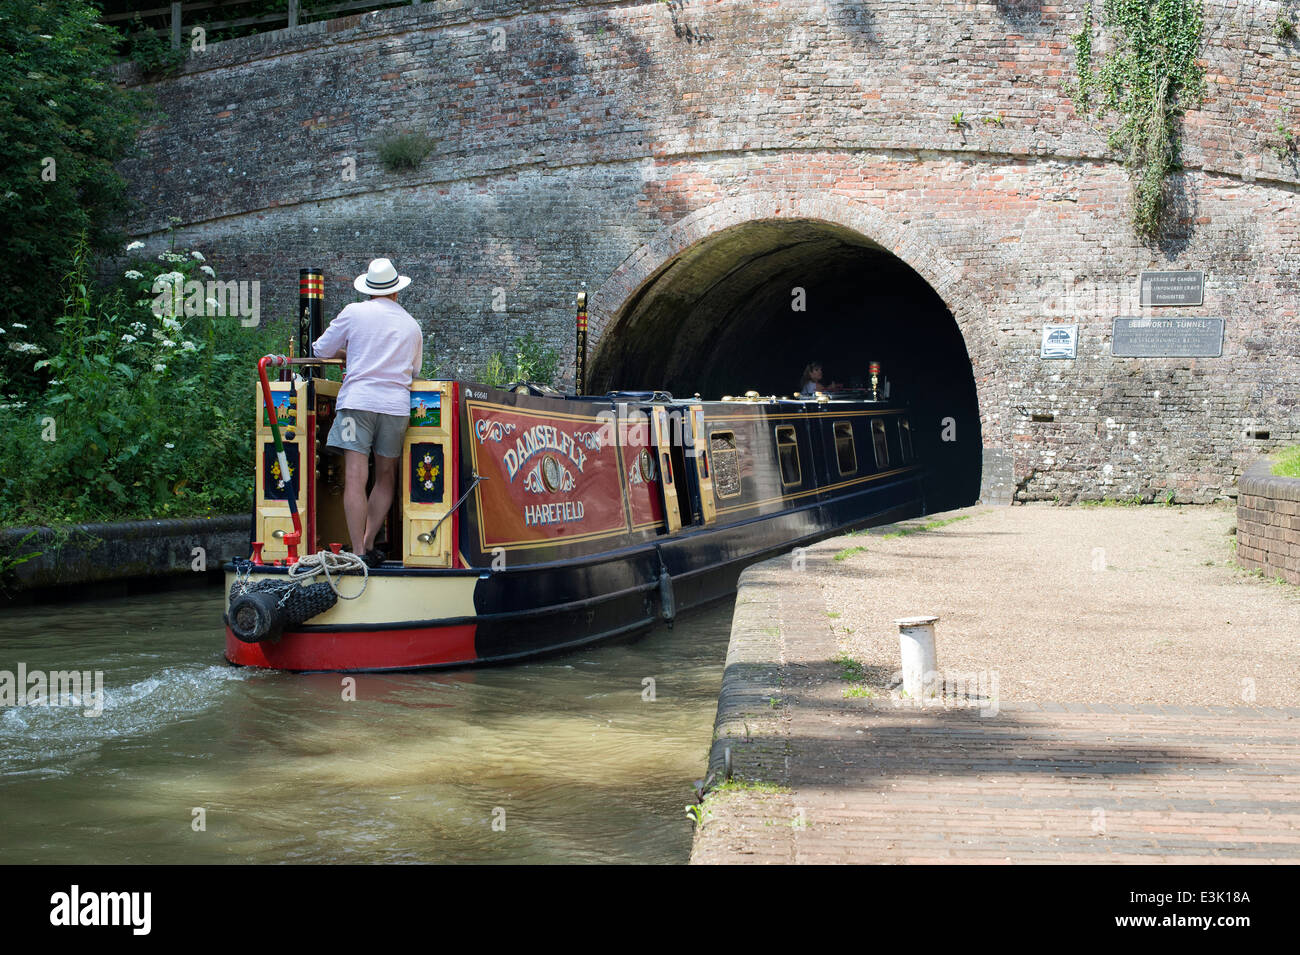 Narrowboat on the Grand Union Canal at Stoke Bruerne entering the Blisworth Tunnel. Northamptonshire. England - Stock Image